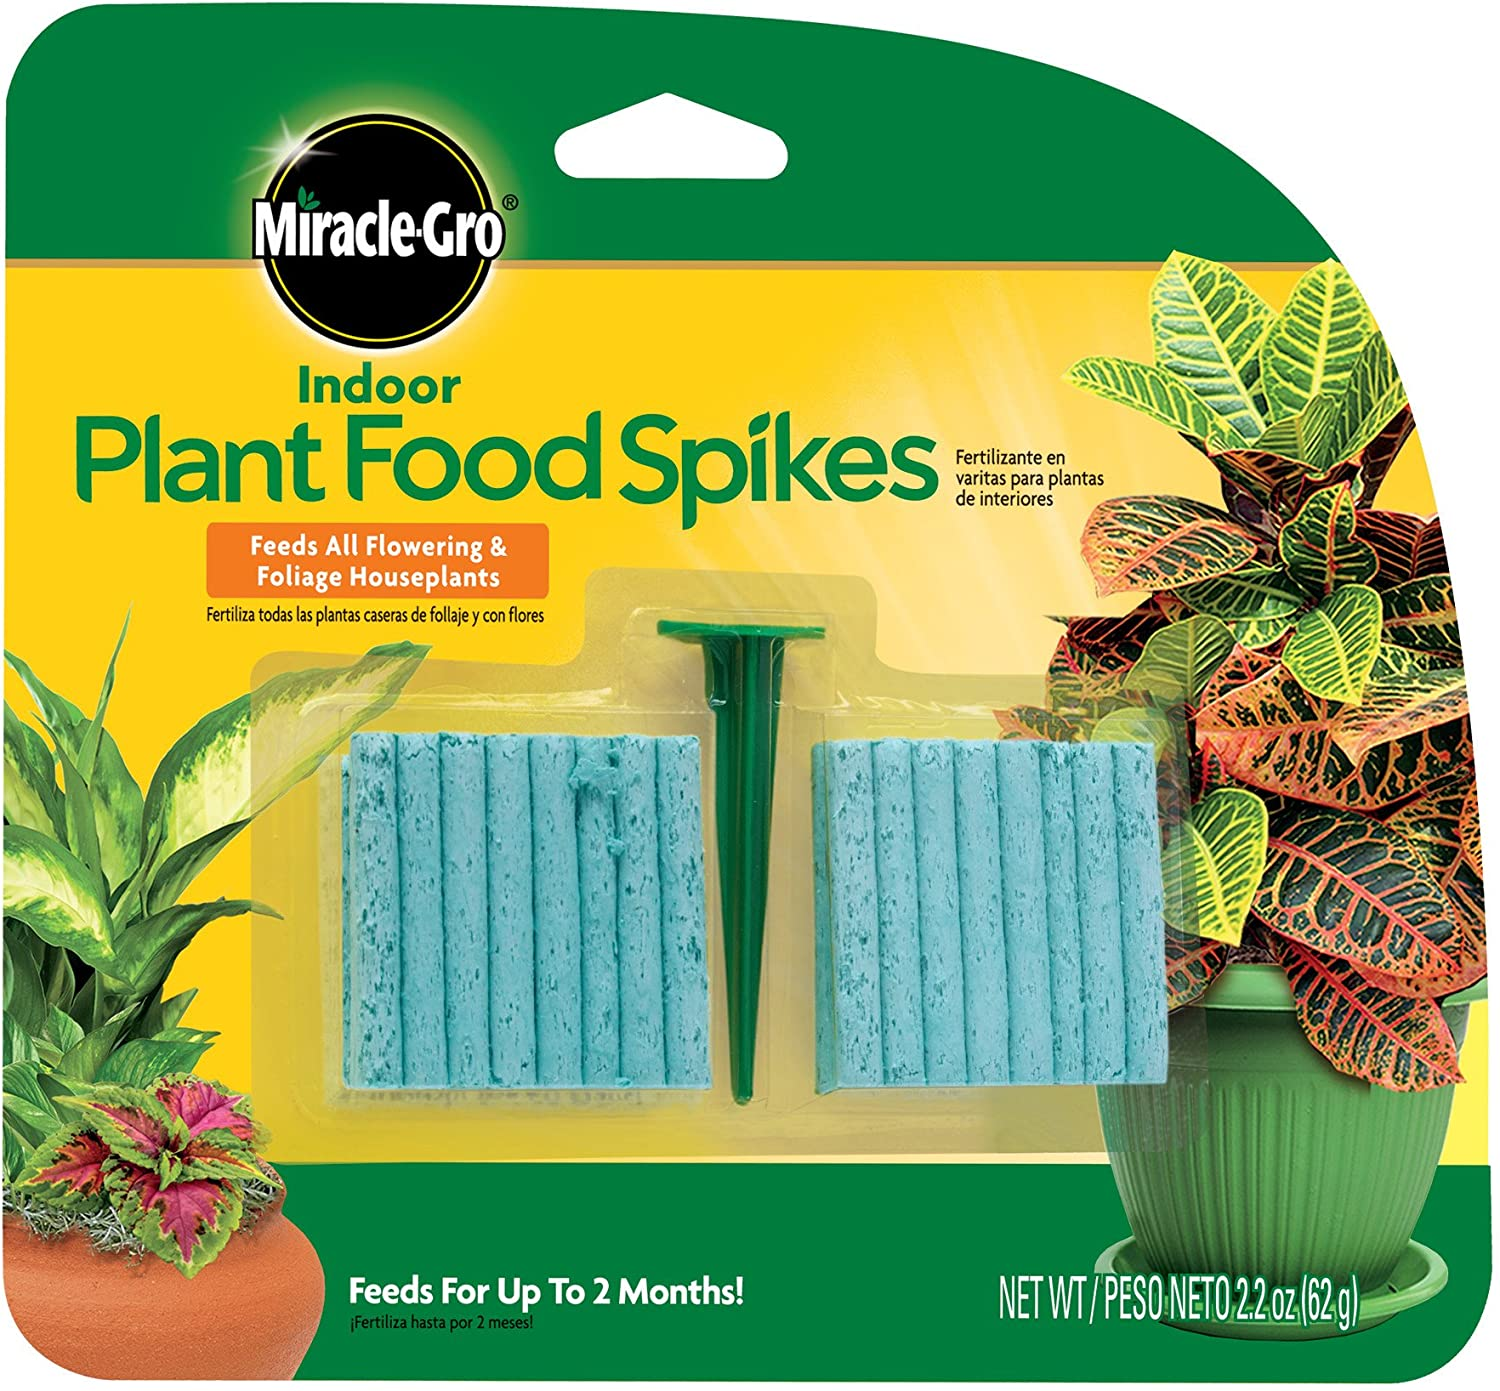 Miracle-Gro 300157 Plant Food, 48-Spikes Indoor Fertilizer, Single